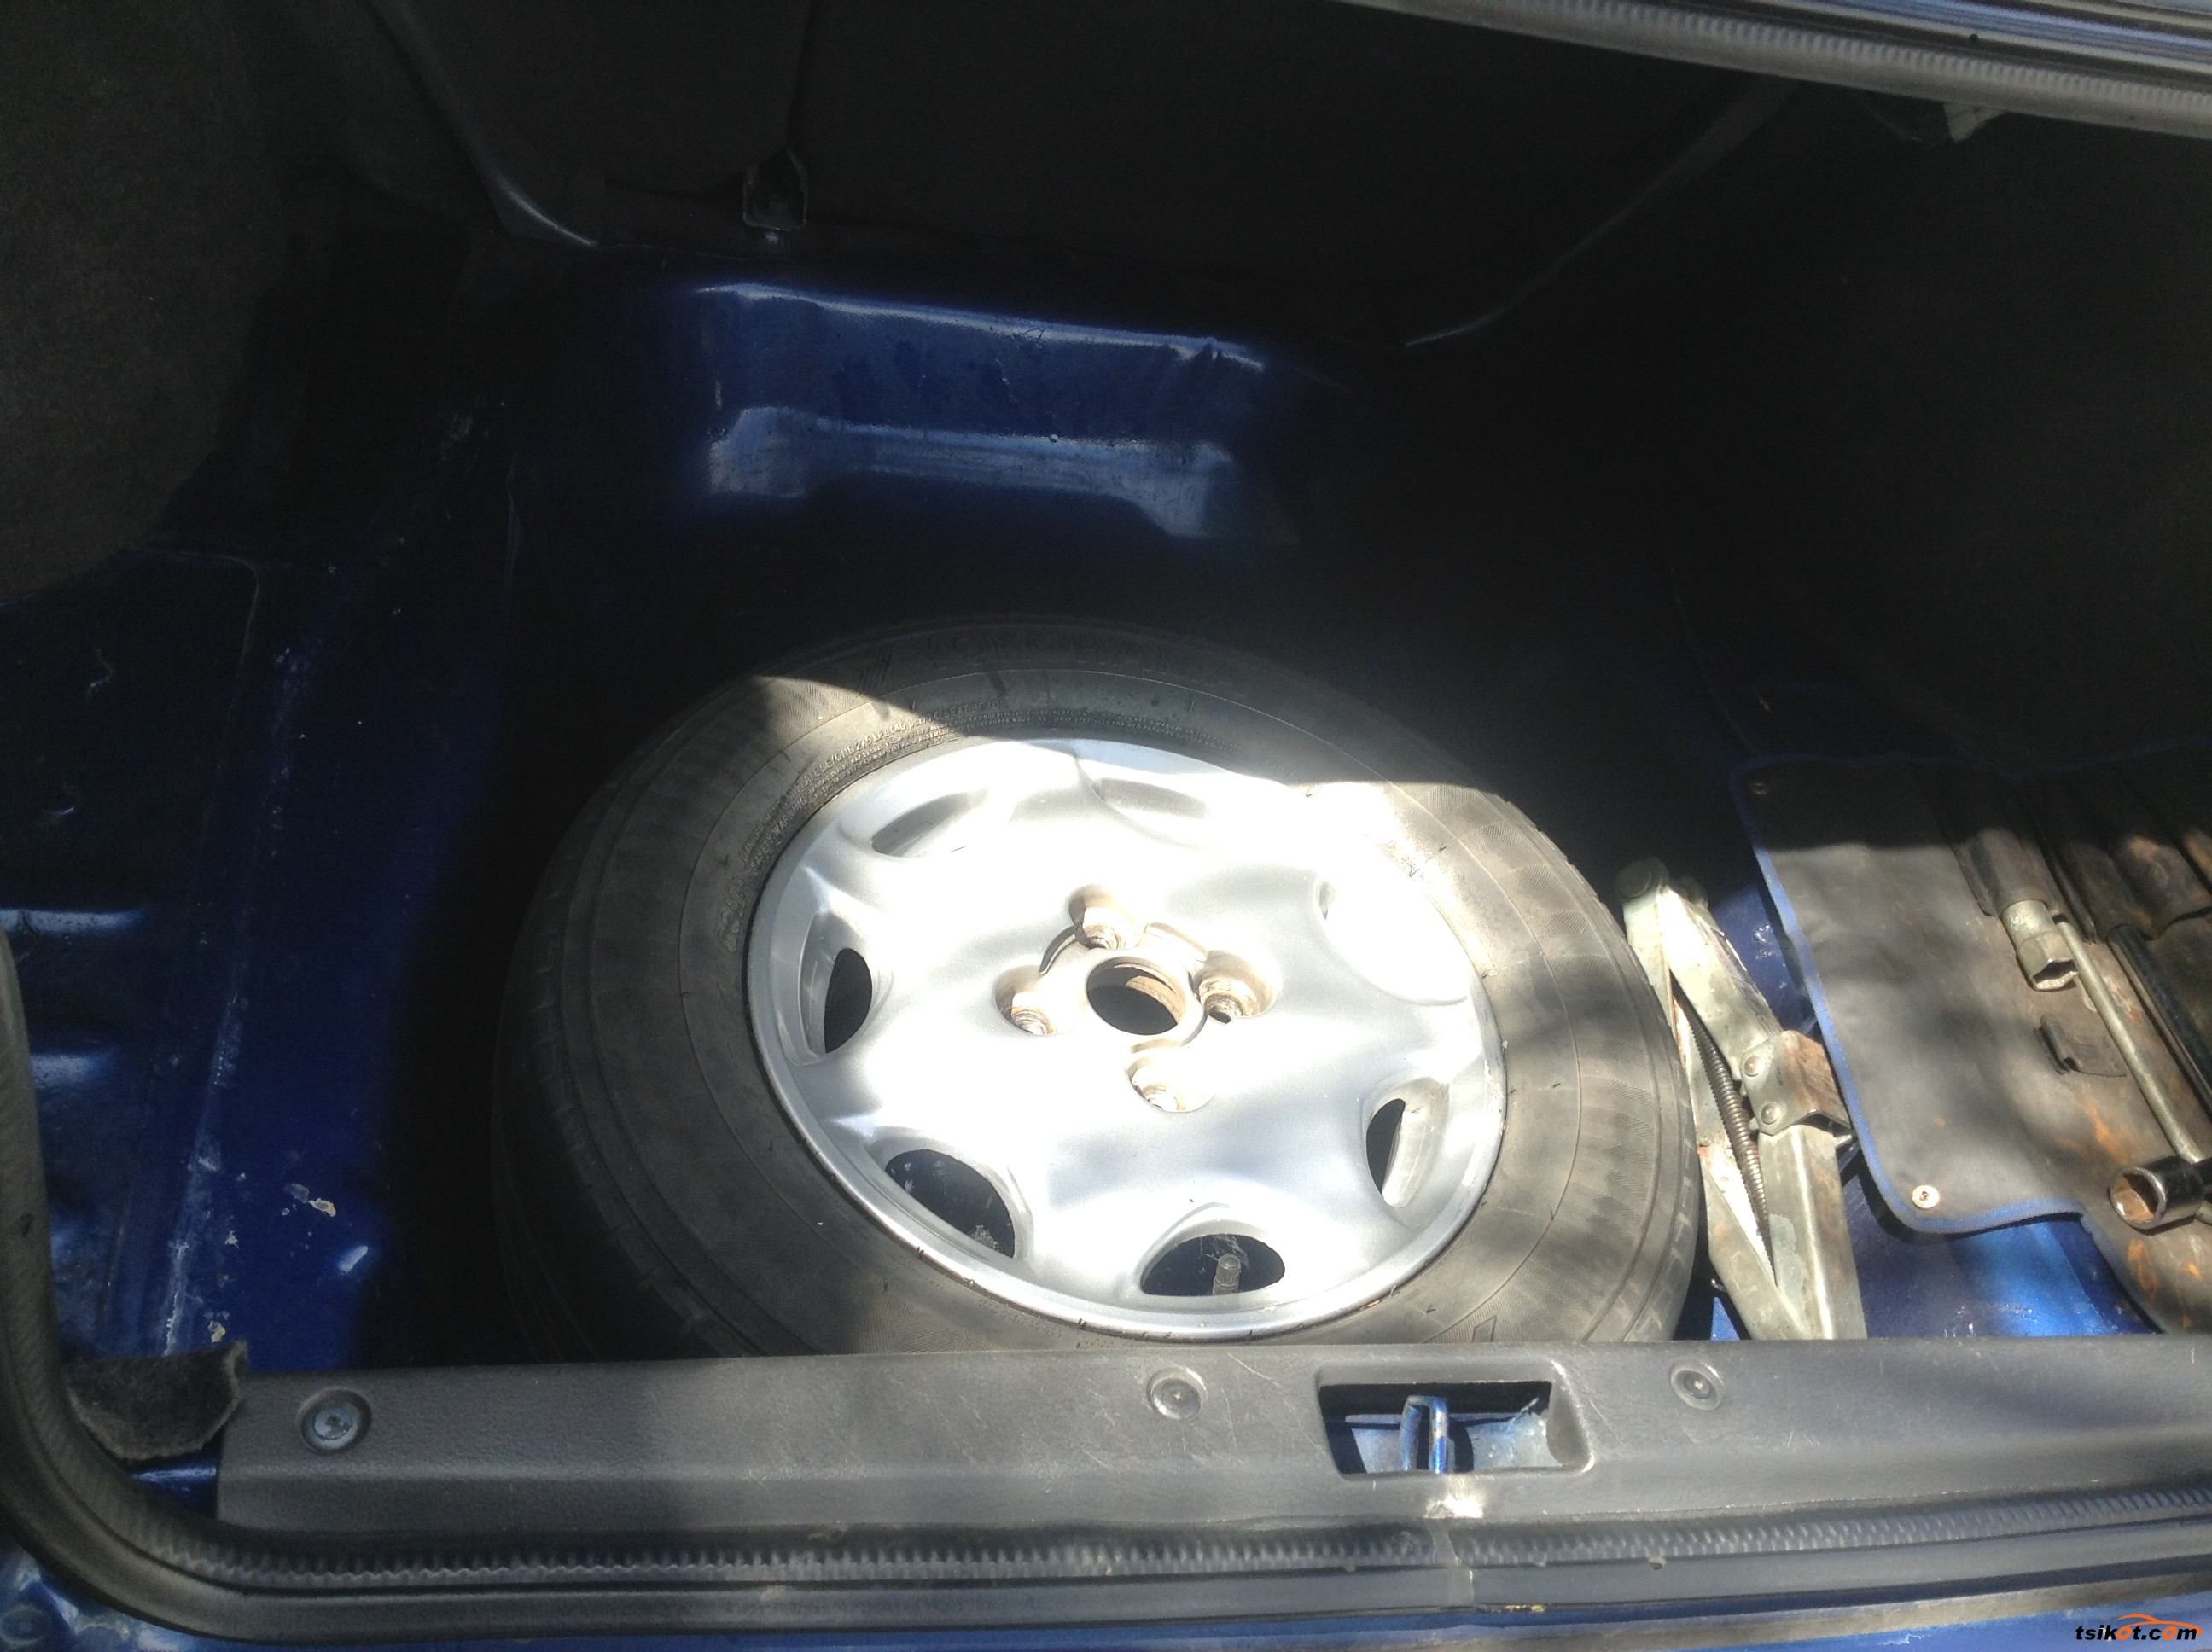 Spare tire on alloy wheels with jack and tire wrench